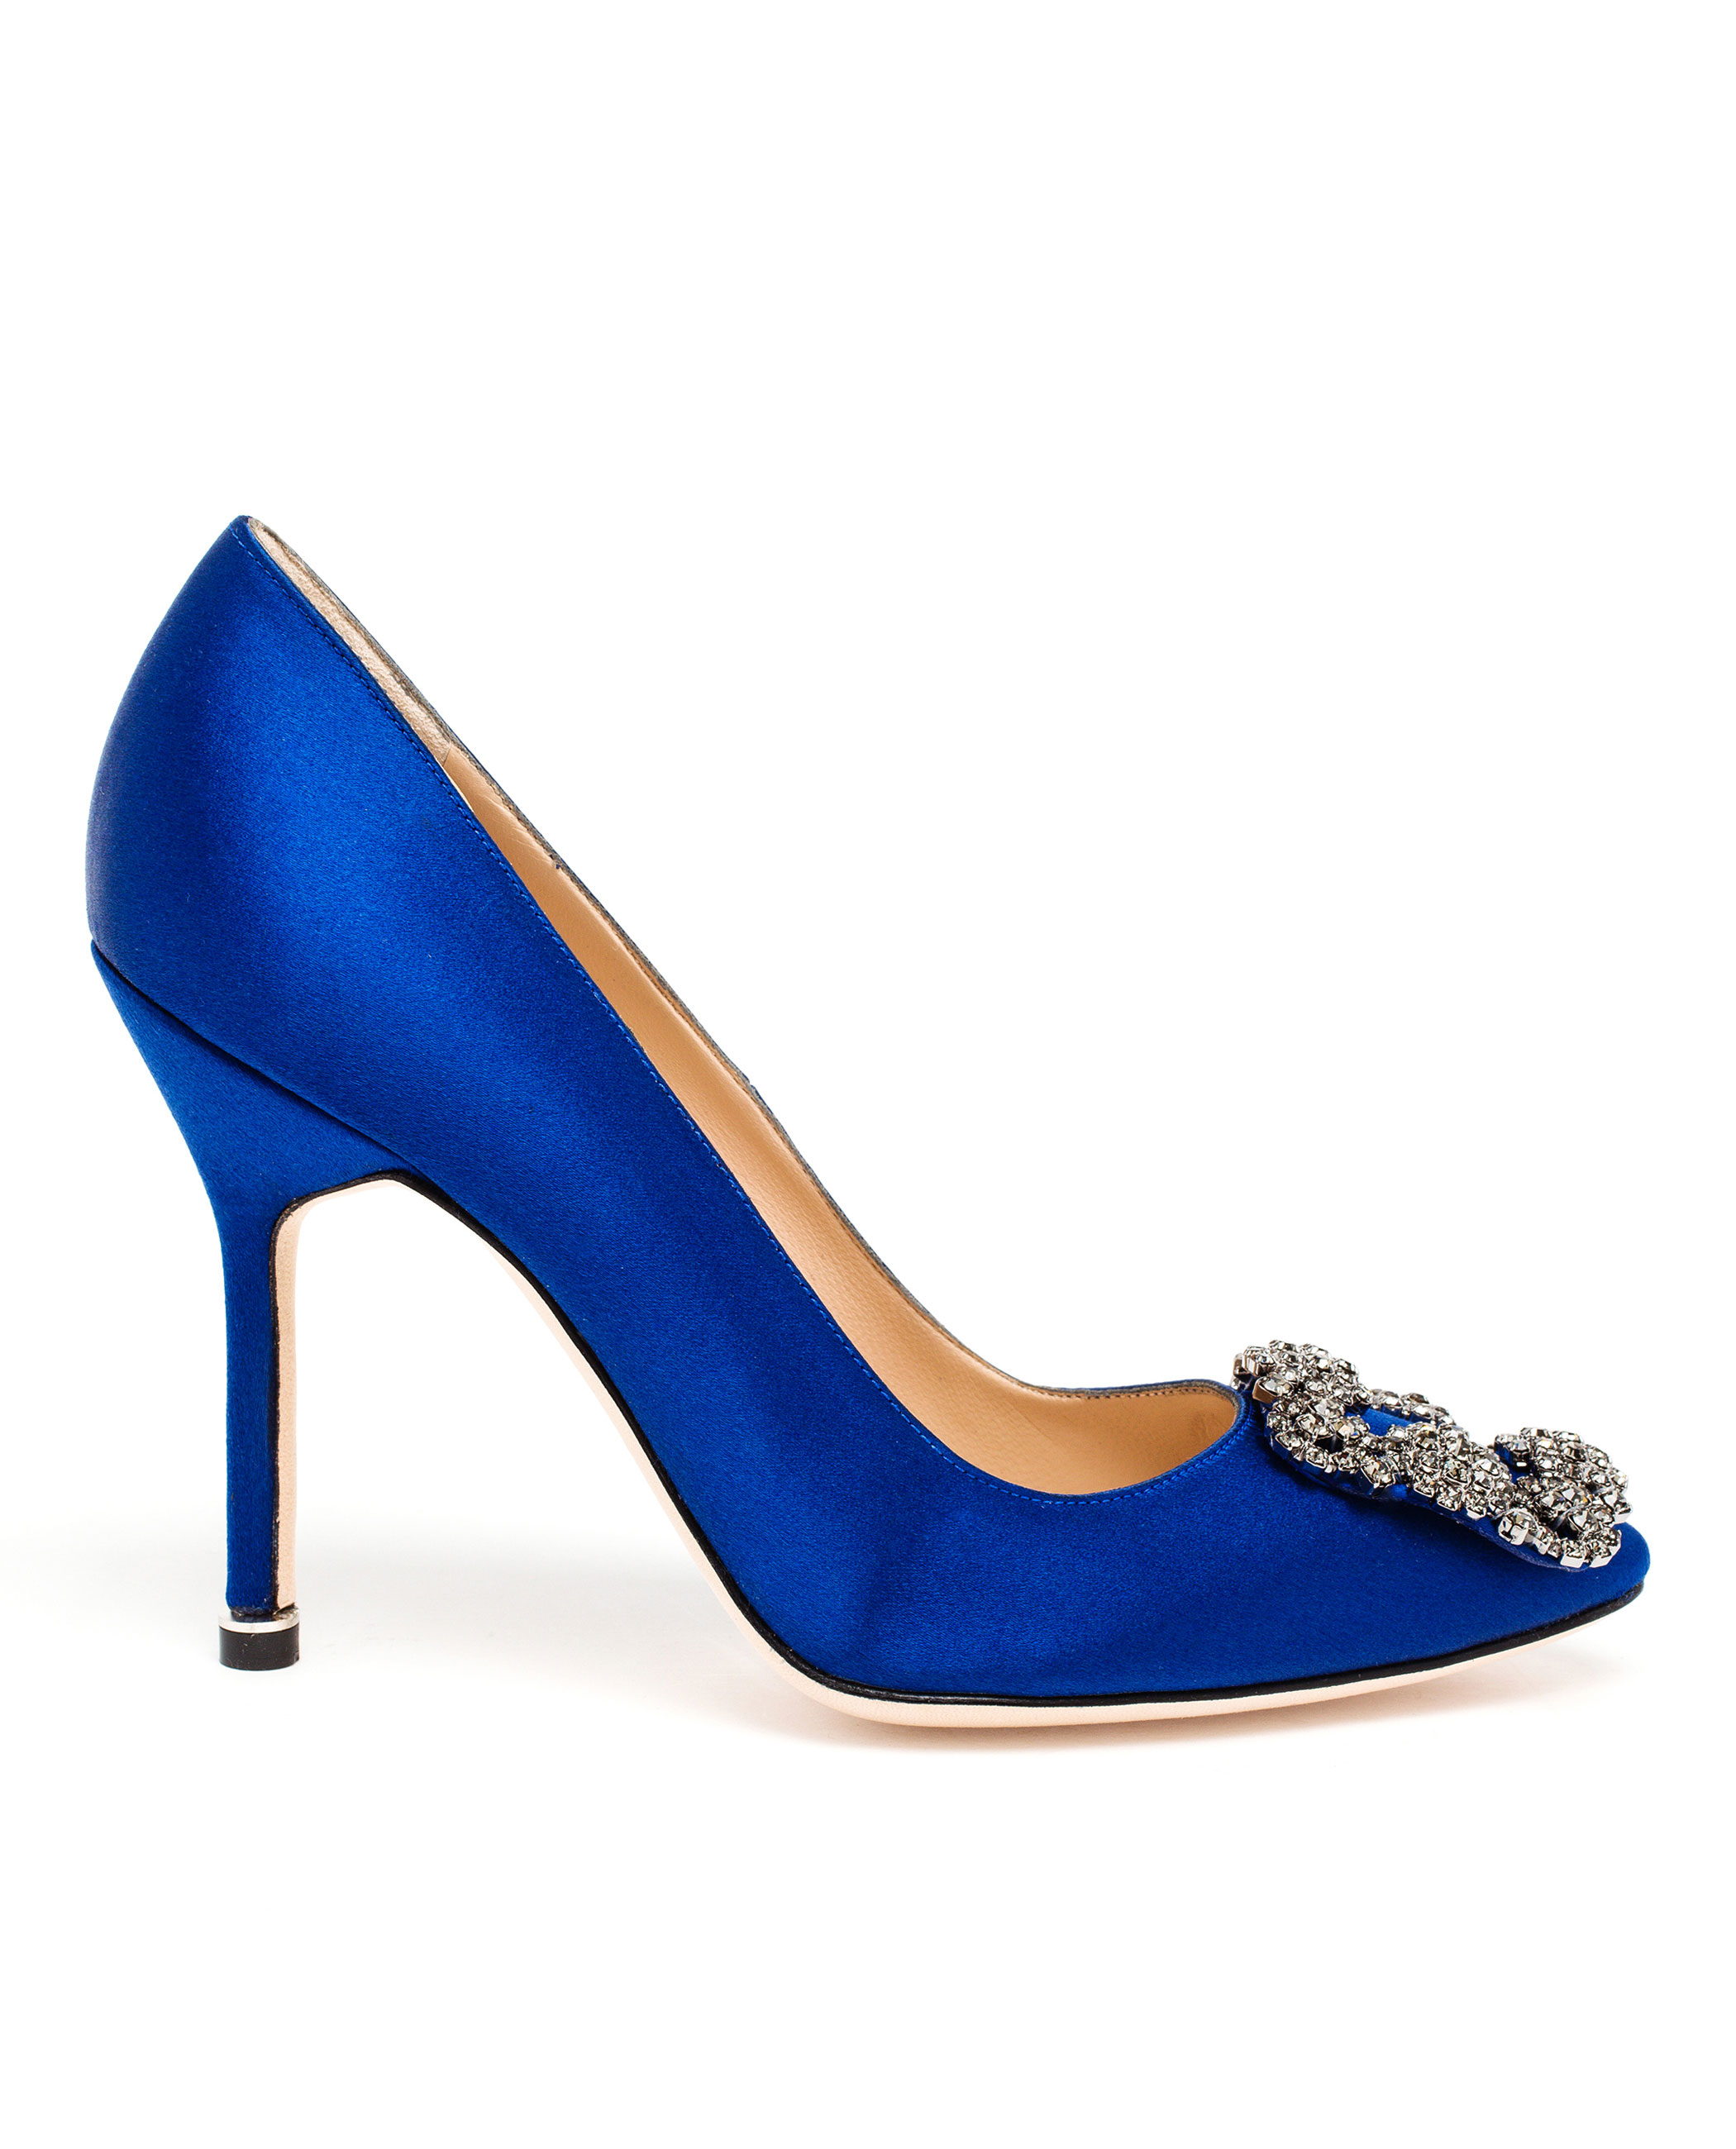 Lyst manolo blahnik hangisi embellished satin pumps in blue for Who is manolo blahnik